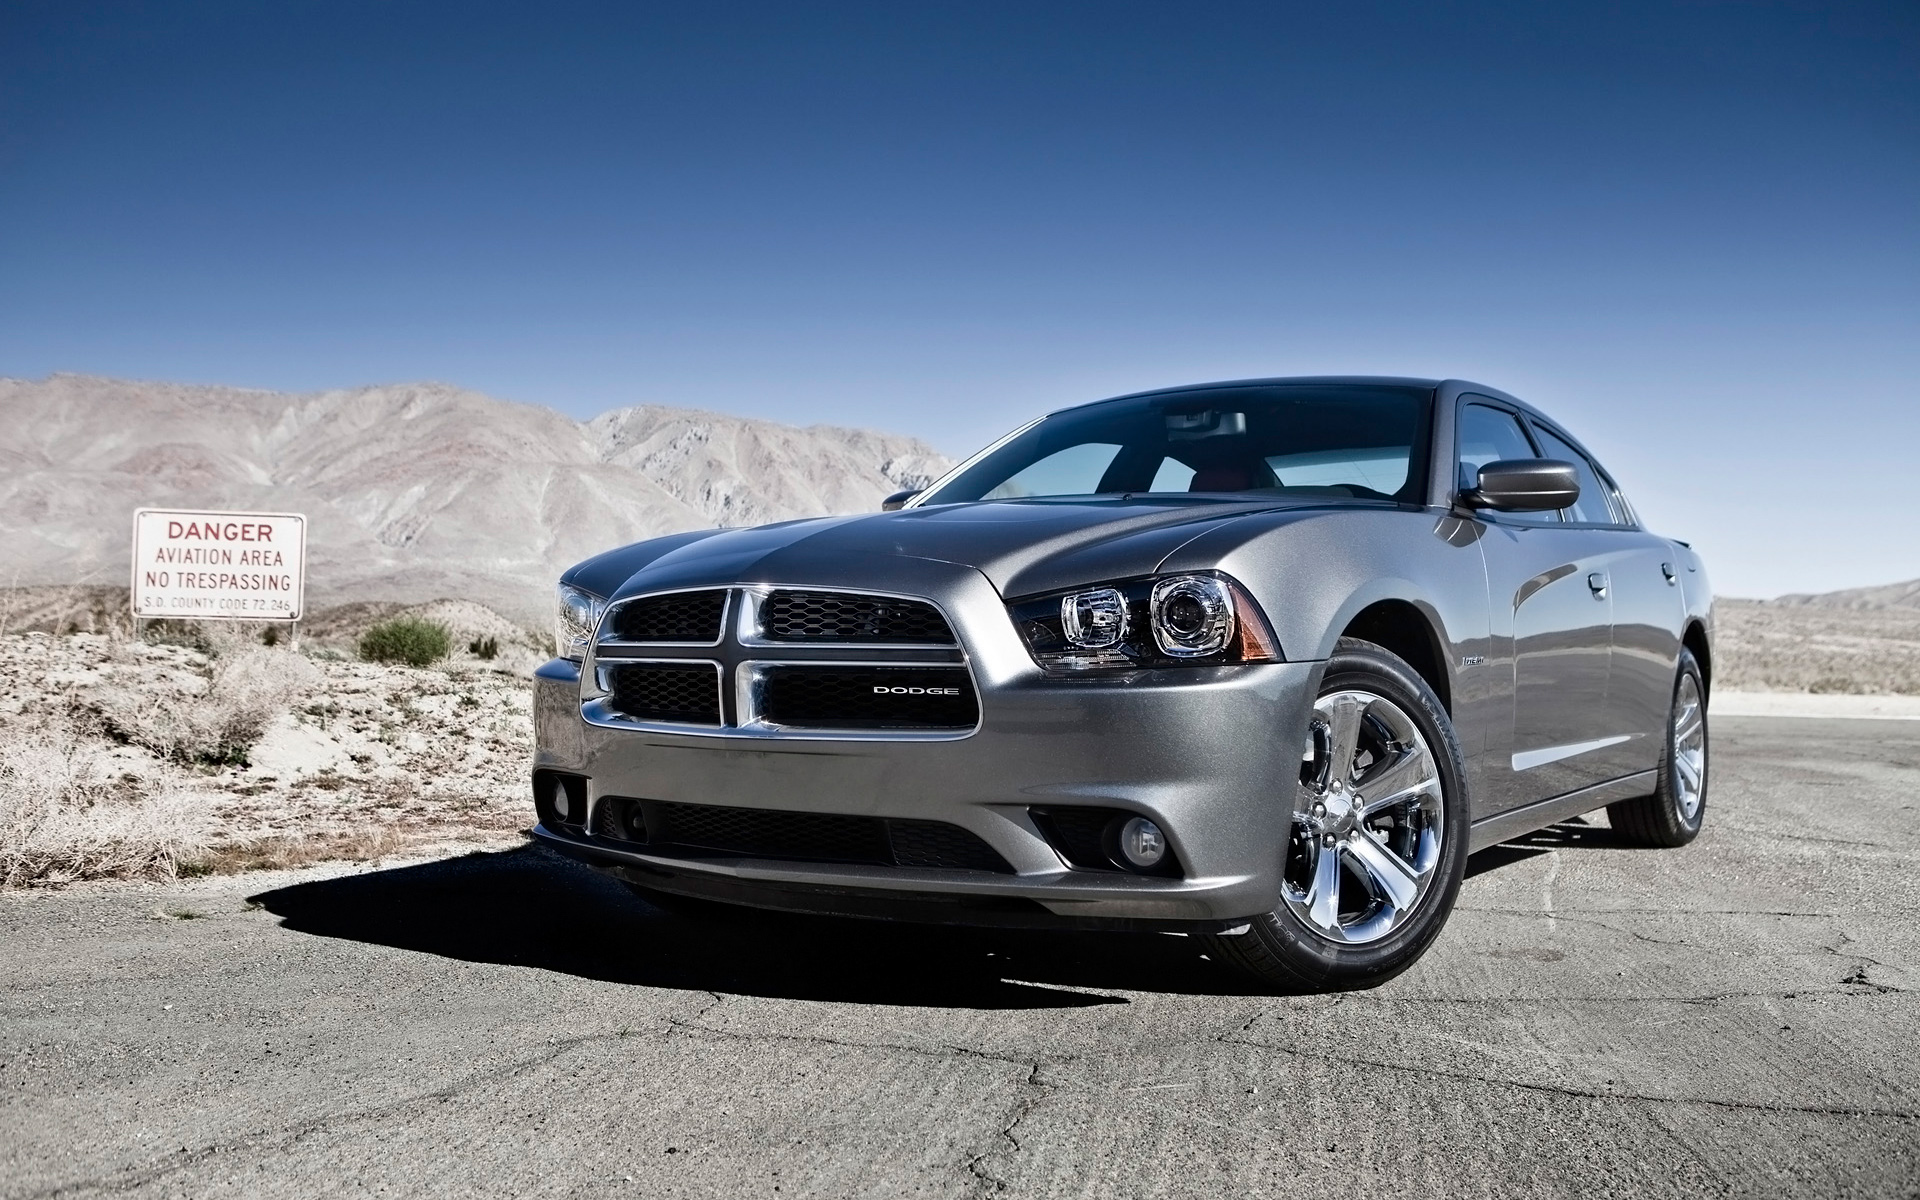 2012 Dodge Charger Rt Wallpaper Hd Car Wallpapers Id 2588